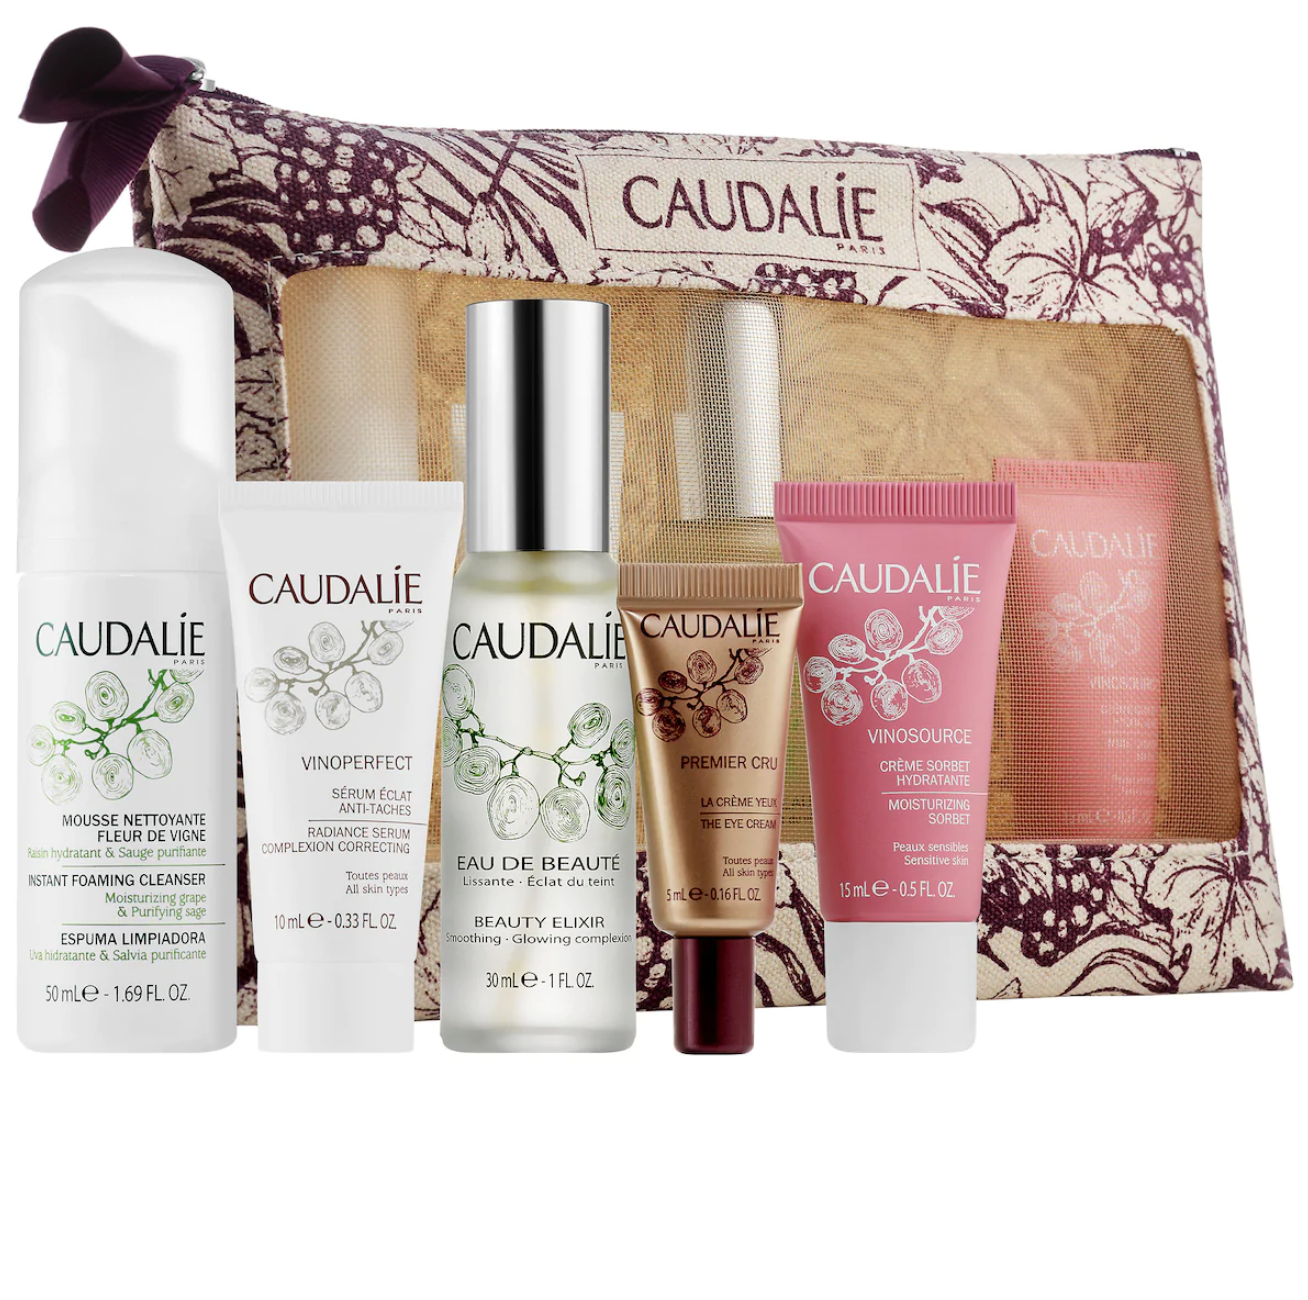 Sephora: Caudalie Favorites Set